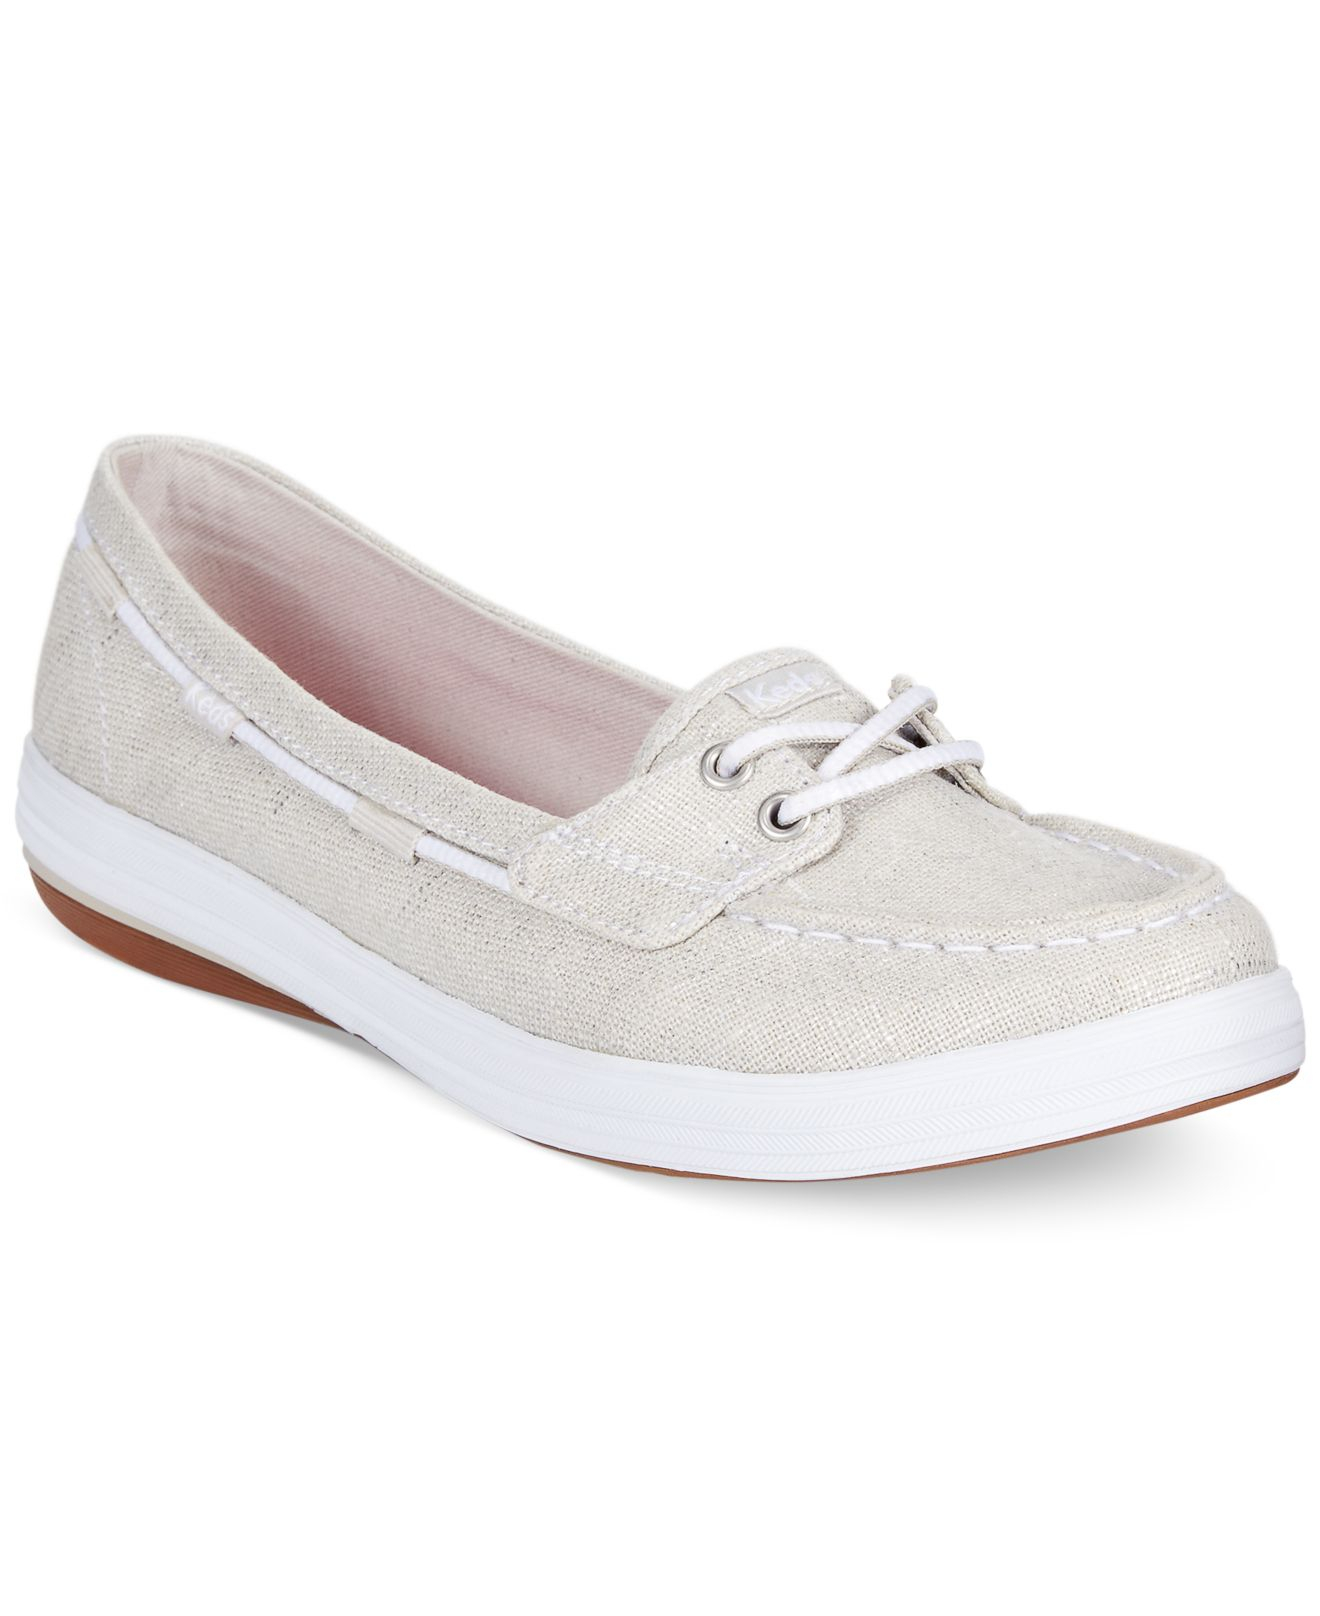 9ee8f8e3df Keds Women's Glimmer Boat Shoes in Metallic - Lyst